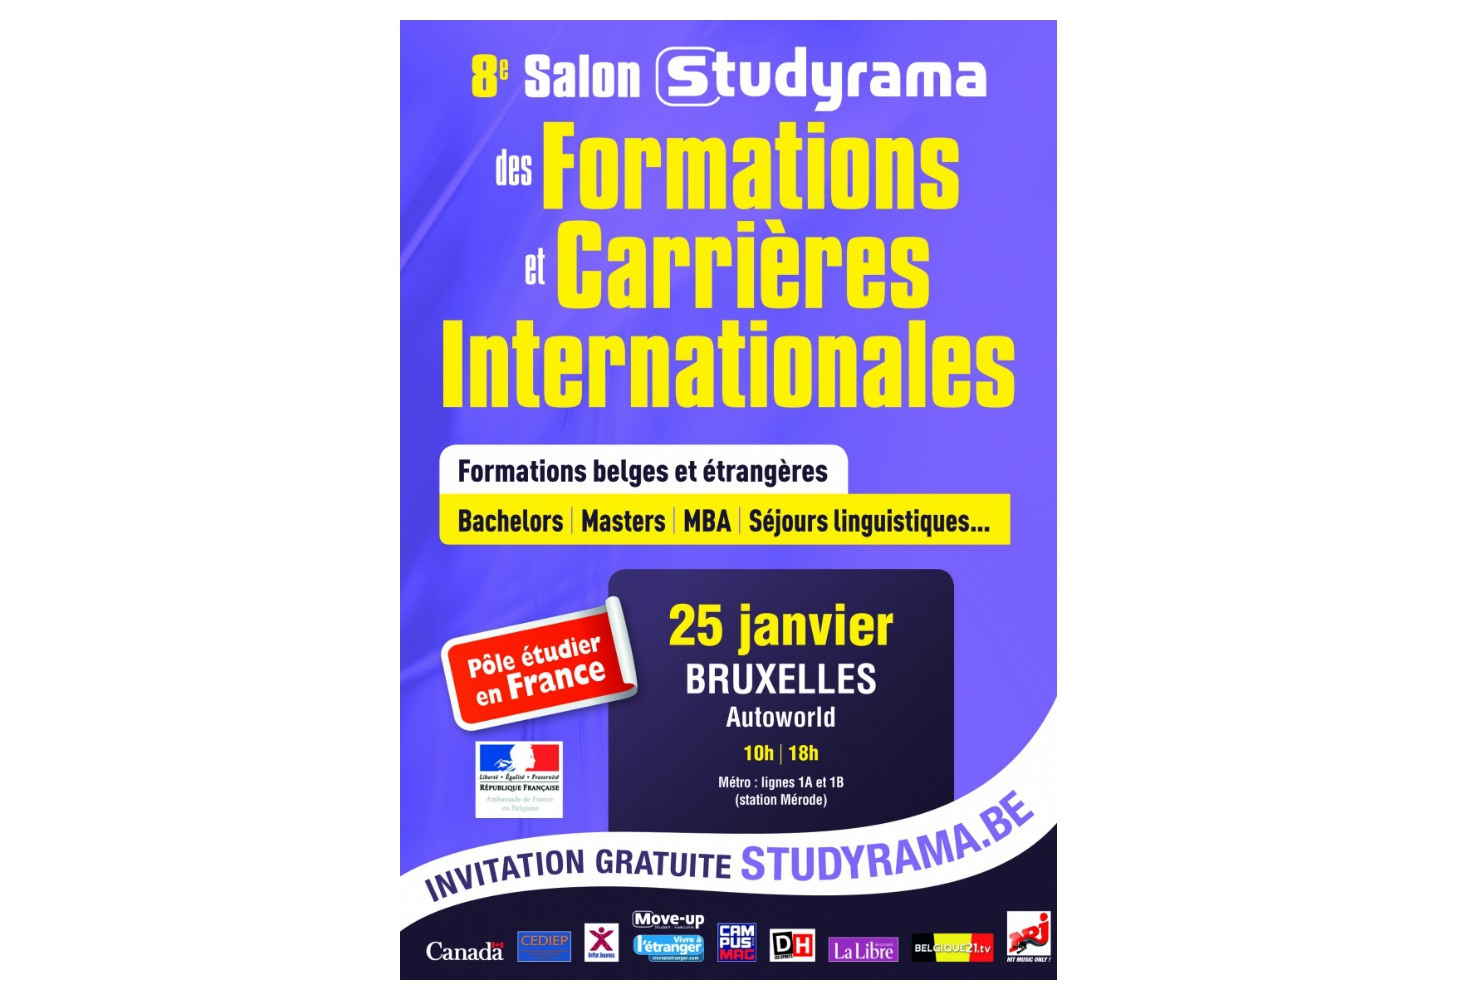 Concours salon studyrama for Salon porte de champerret studyrama